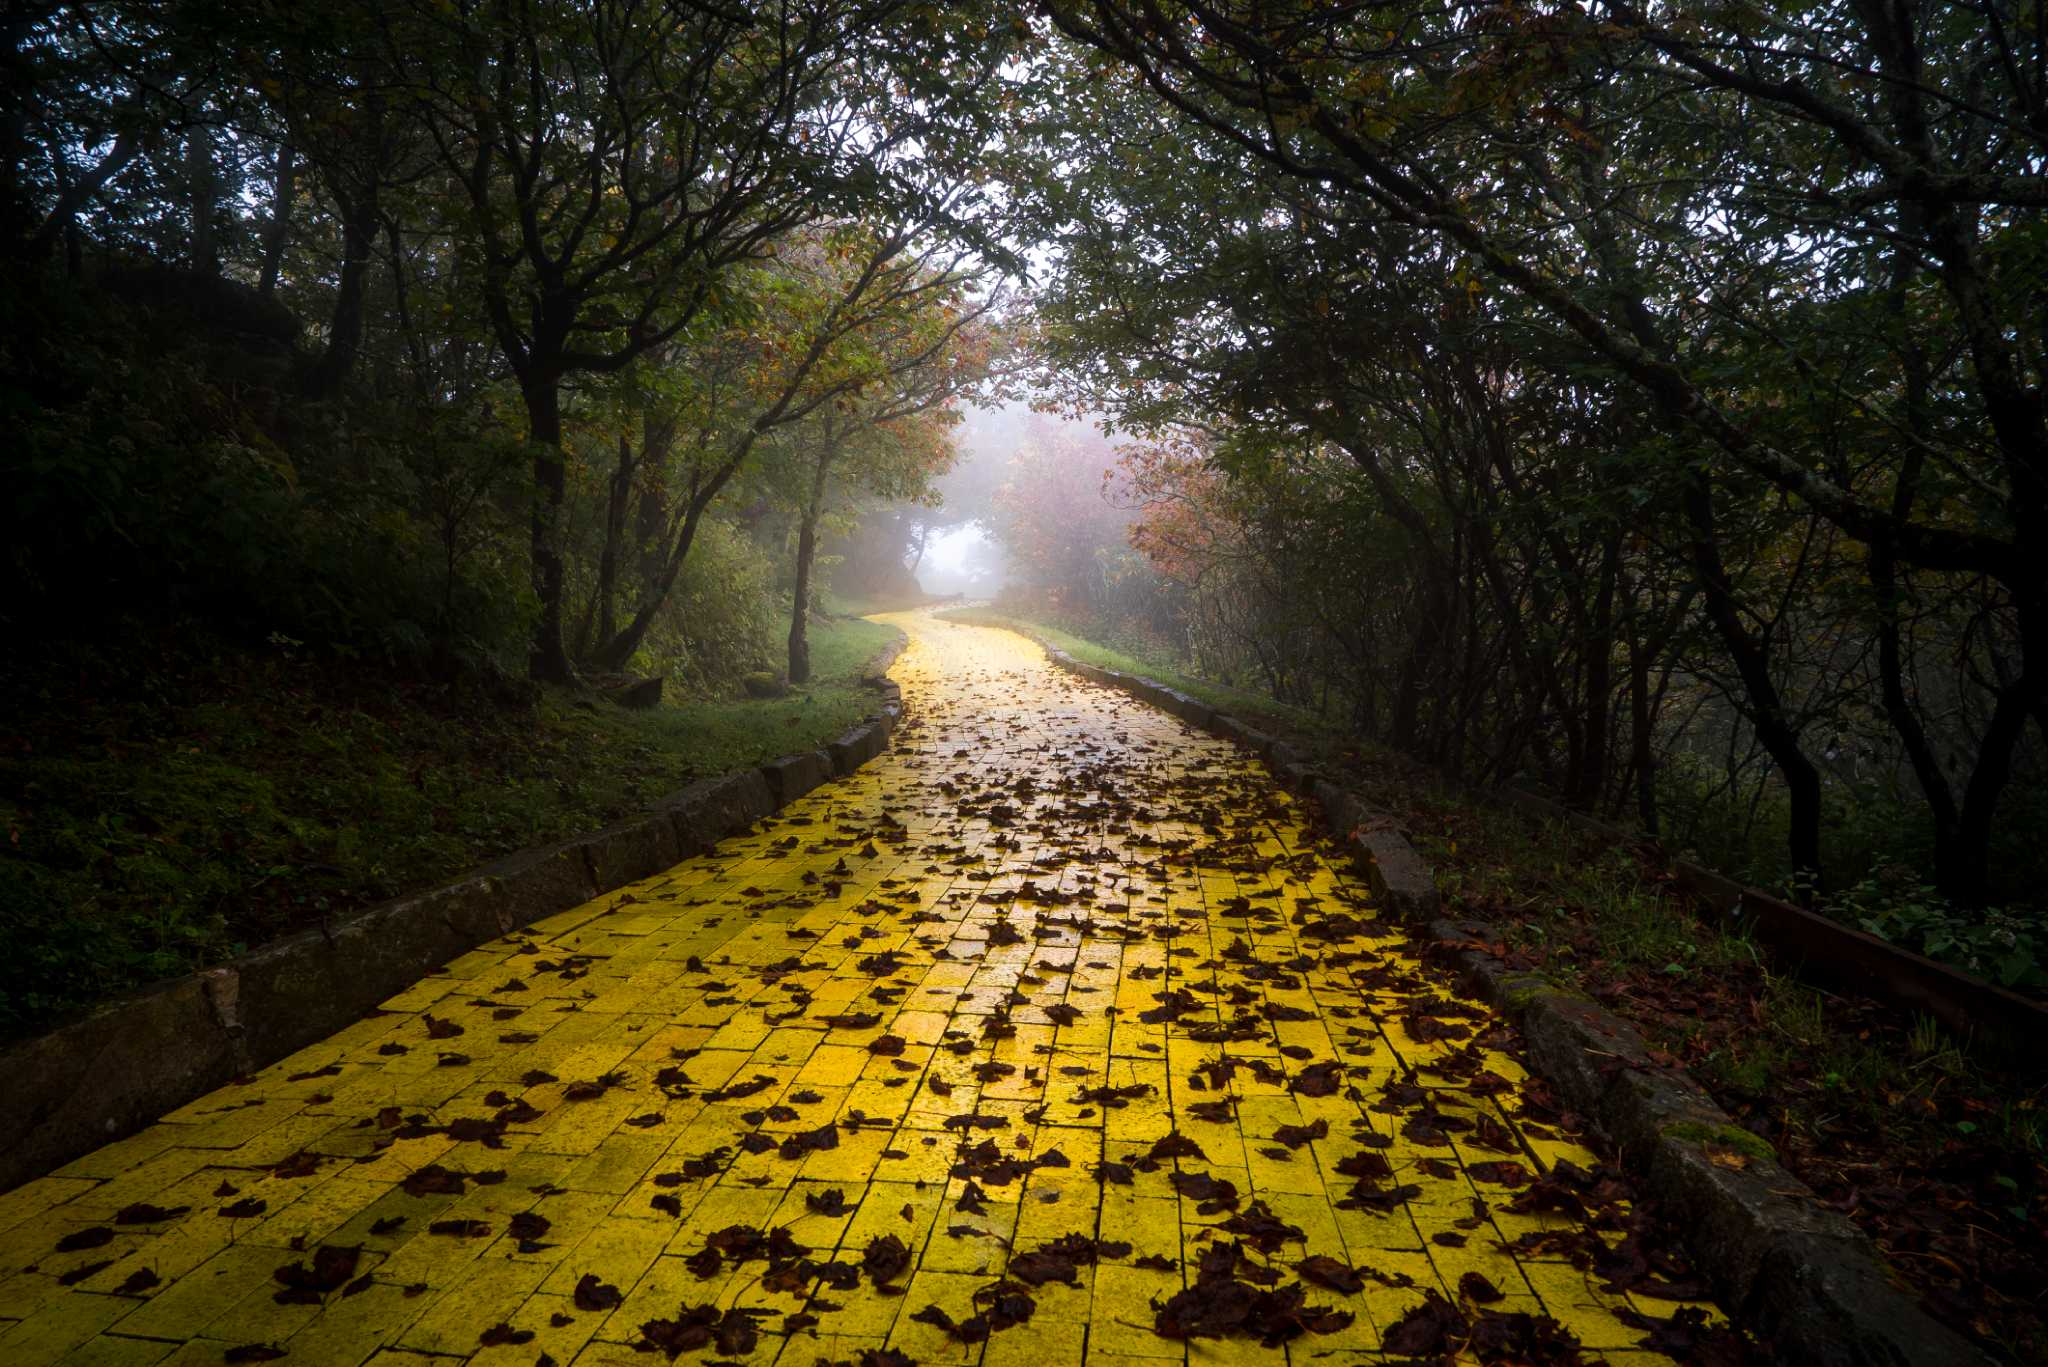 Photos Show Remnants Of Creepy Abandoned Wizard Of Oz Theme Park In North Carolina